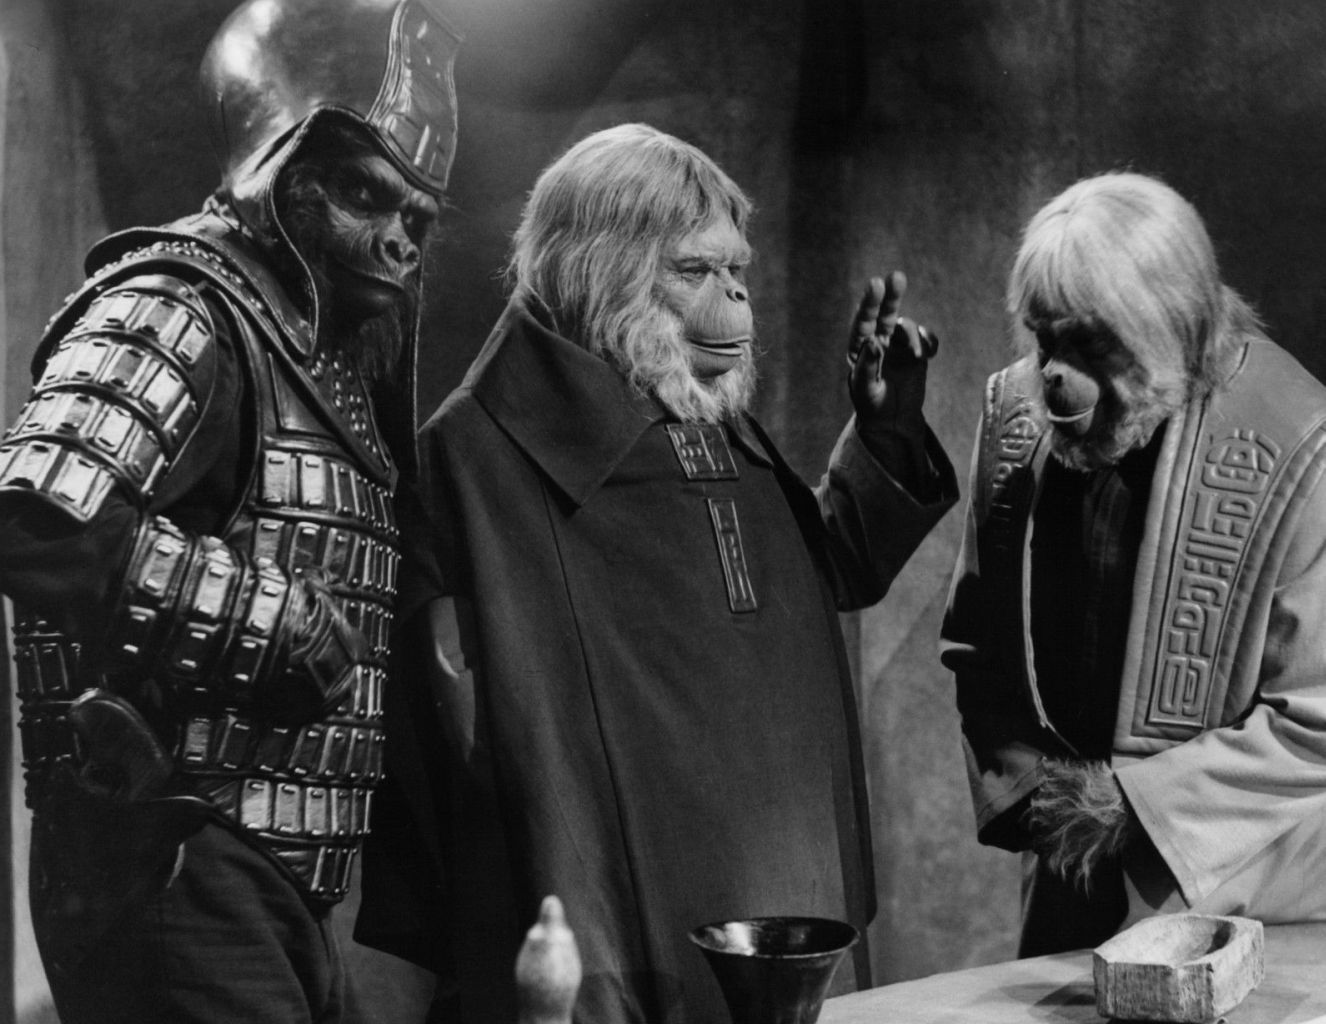 PLANET OF THE APES PHOTO GALLERY #11